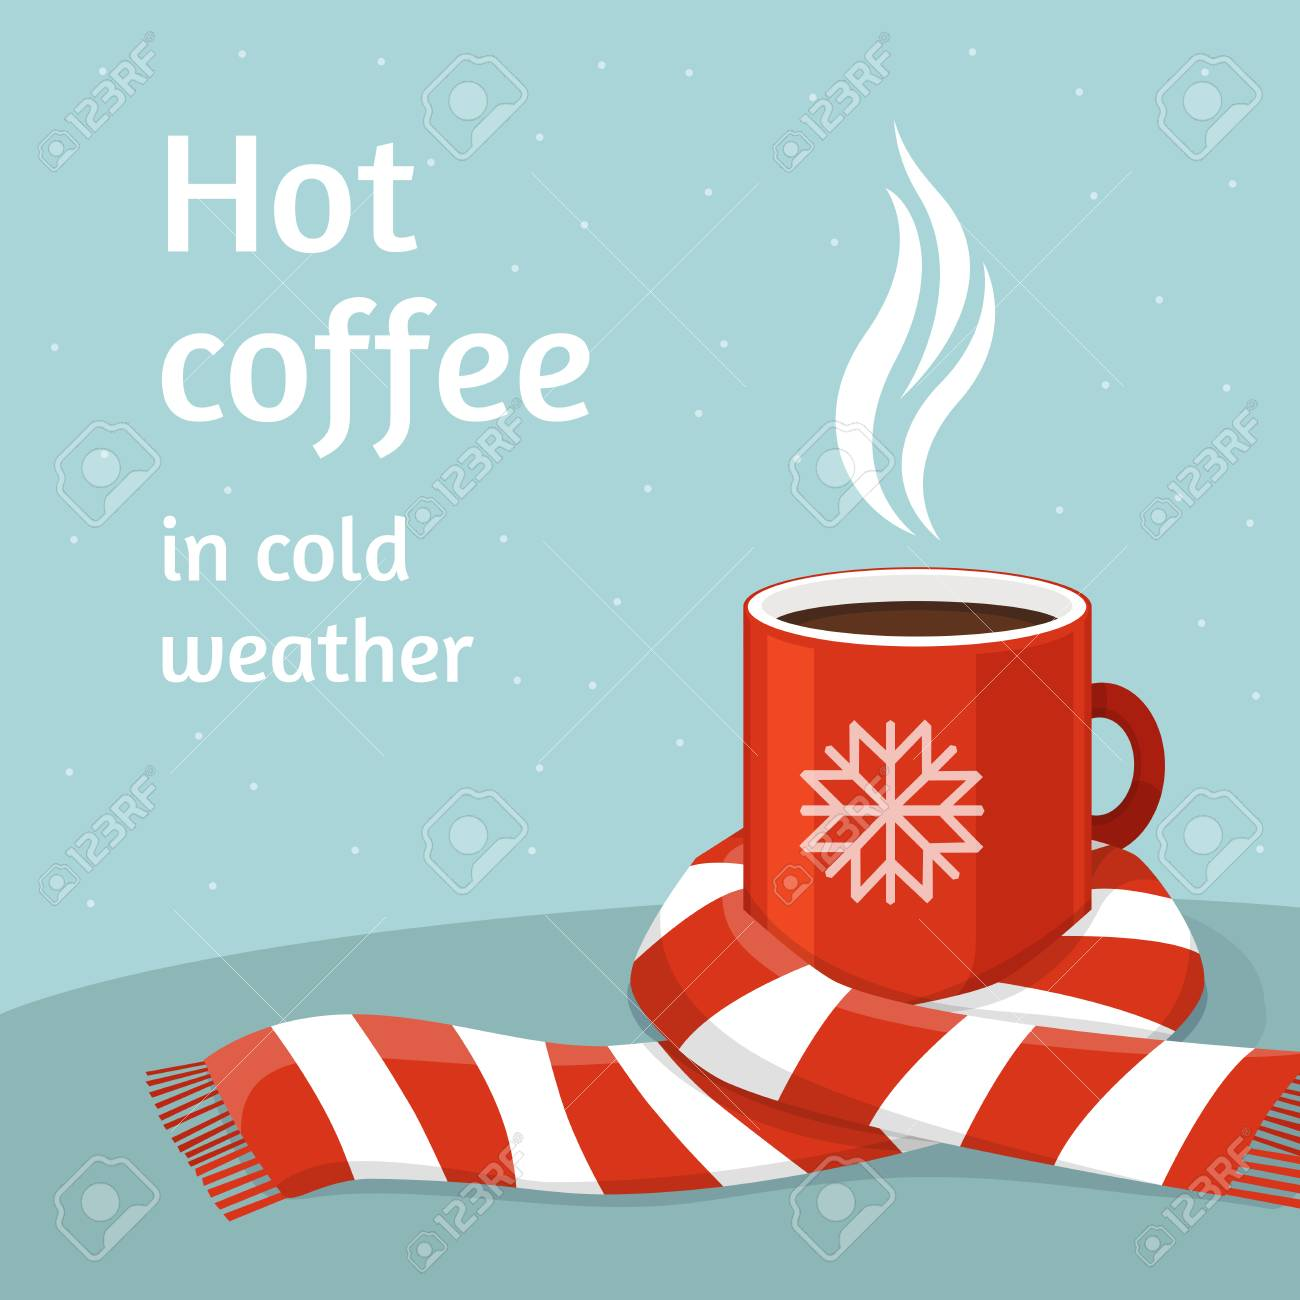 Hot coffee in red cup. - 88222770